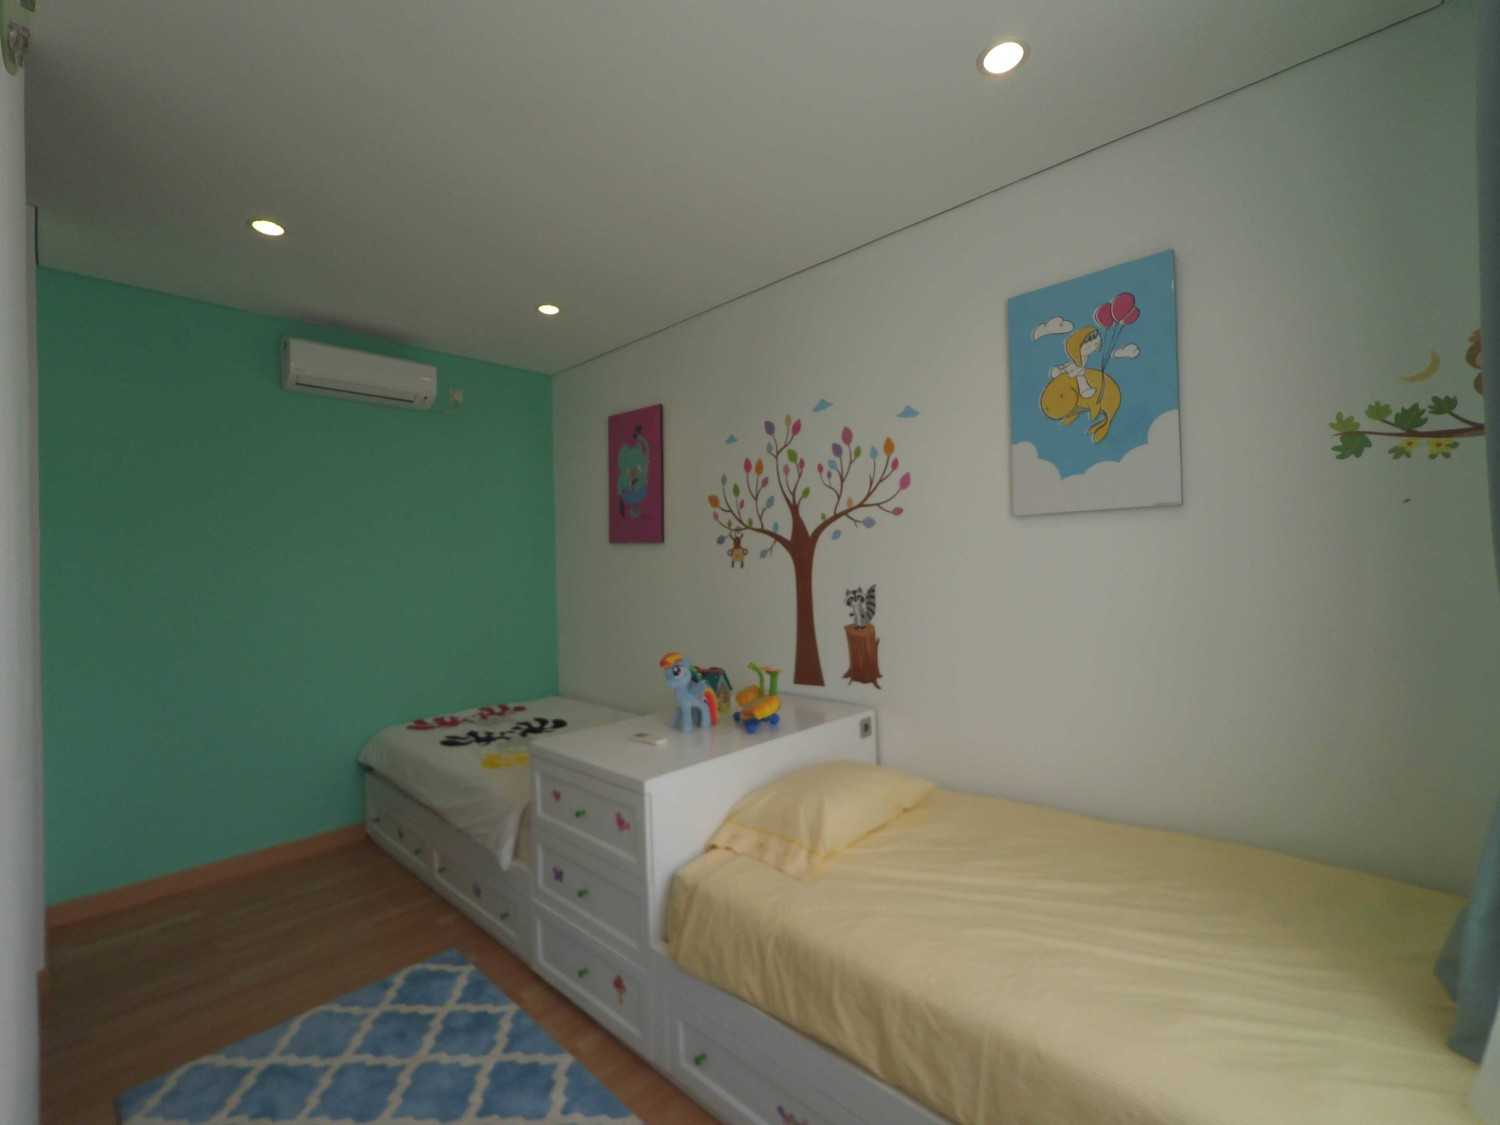 Dezan Studio Interior - Kids Room Pondok Indah Pondok Indah Bedroom  19418